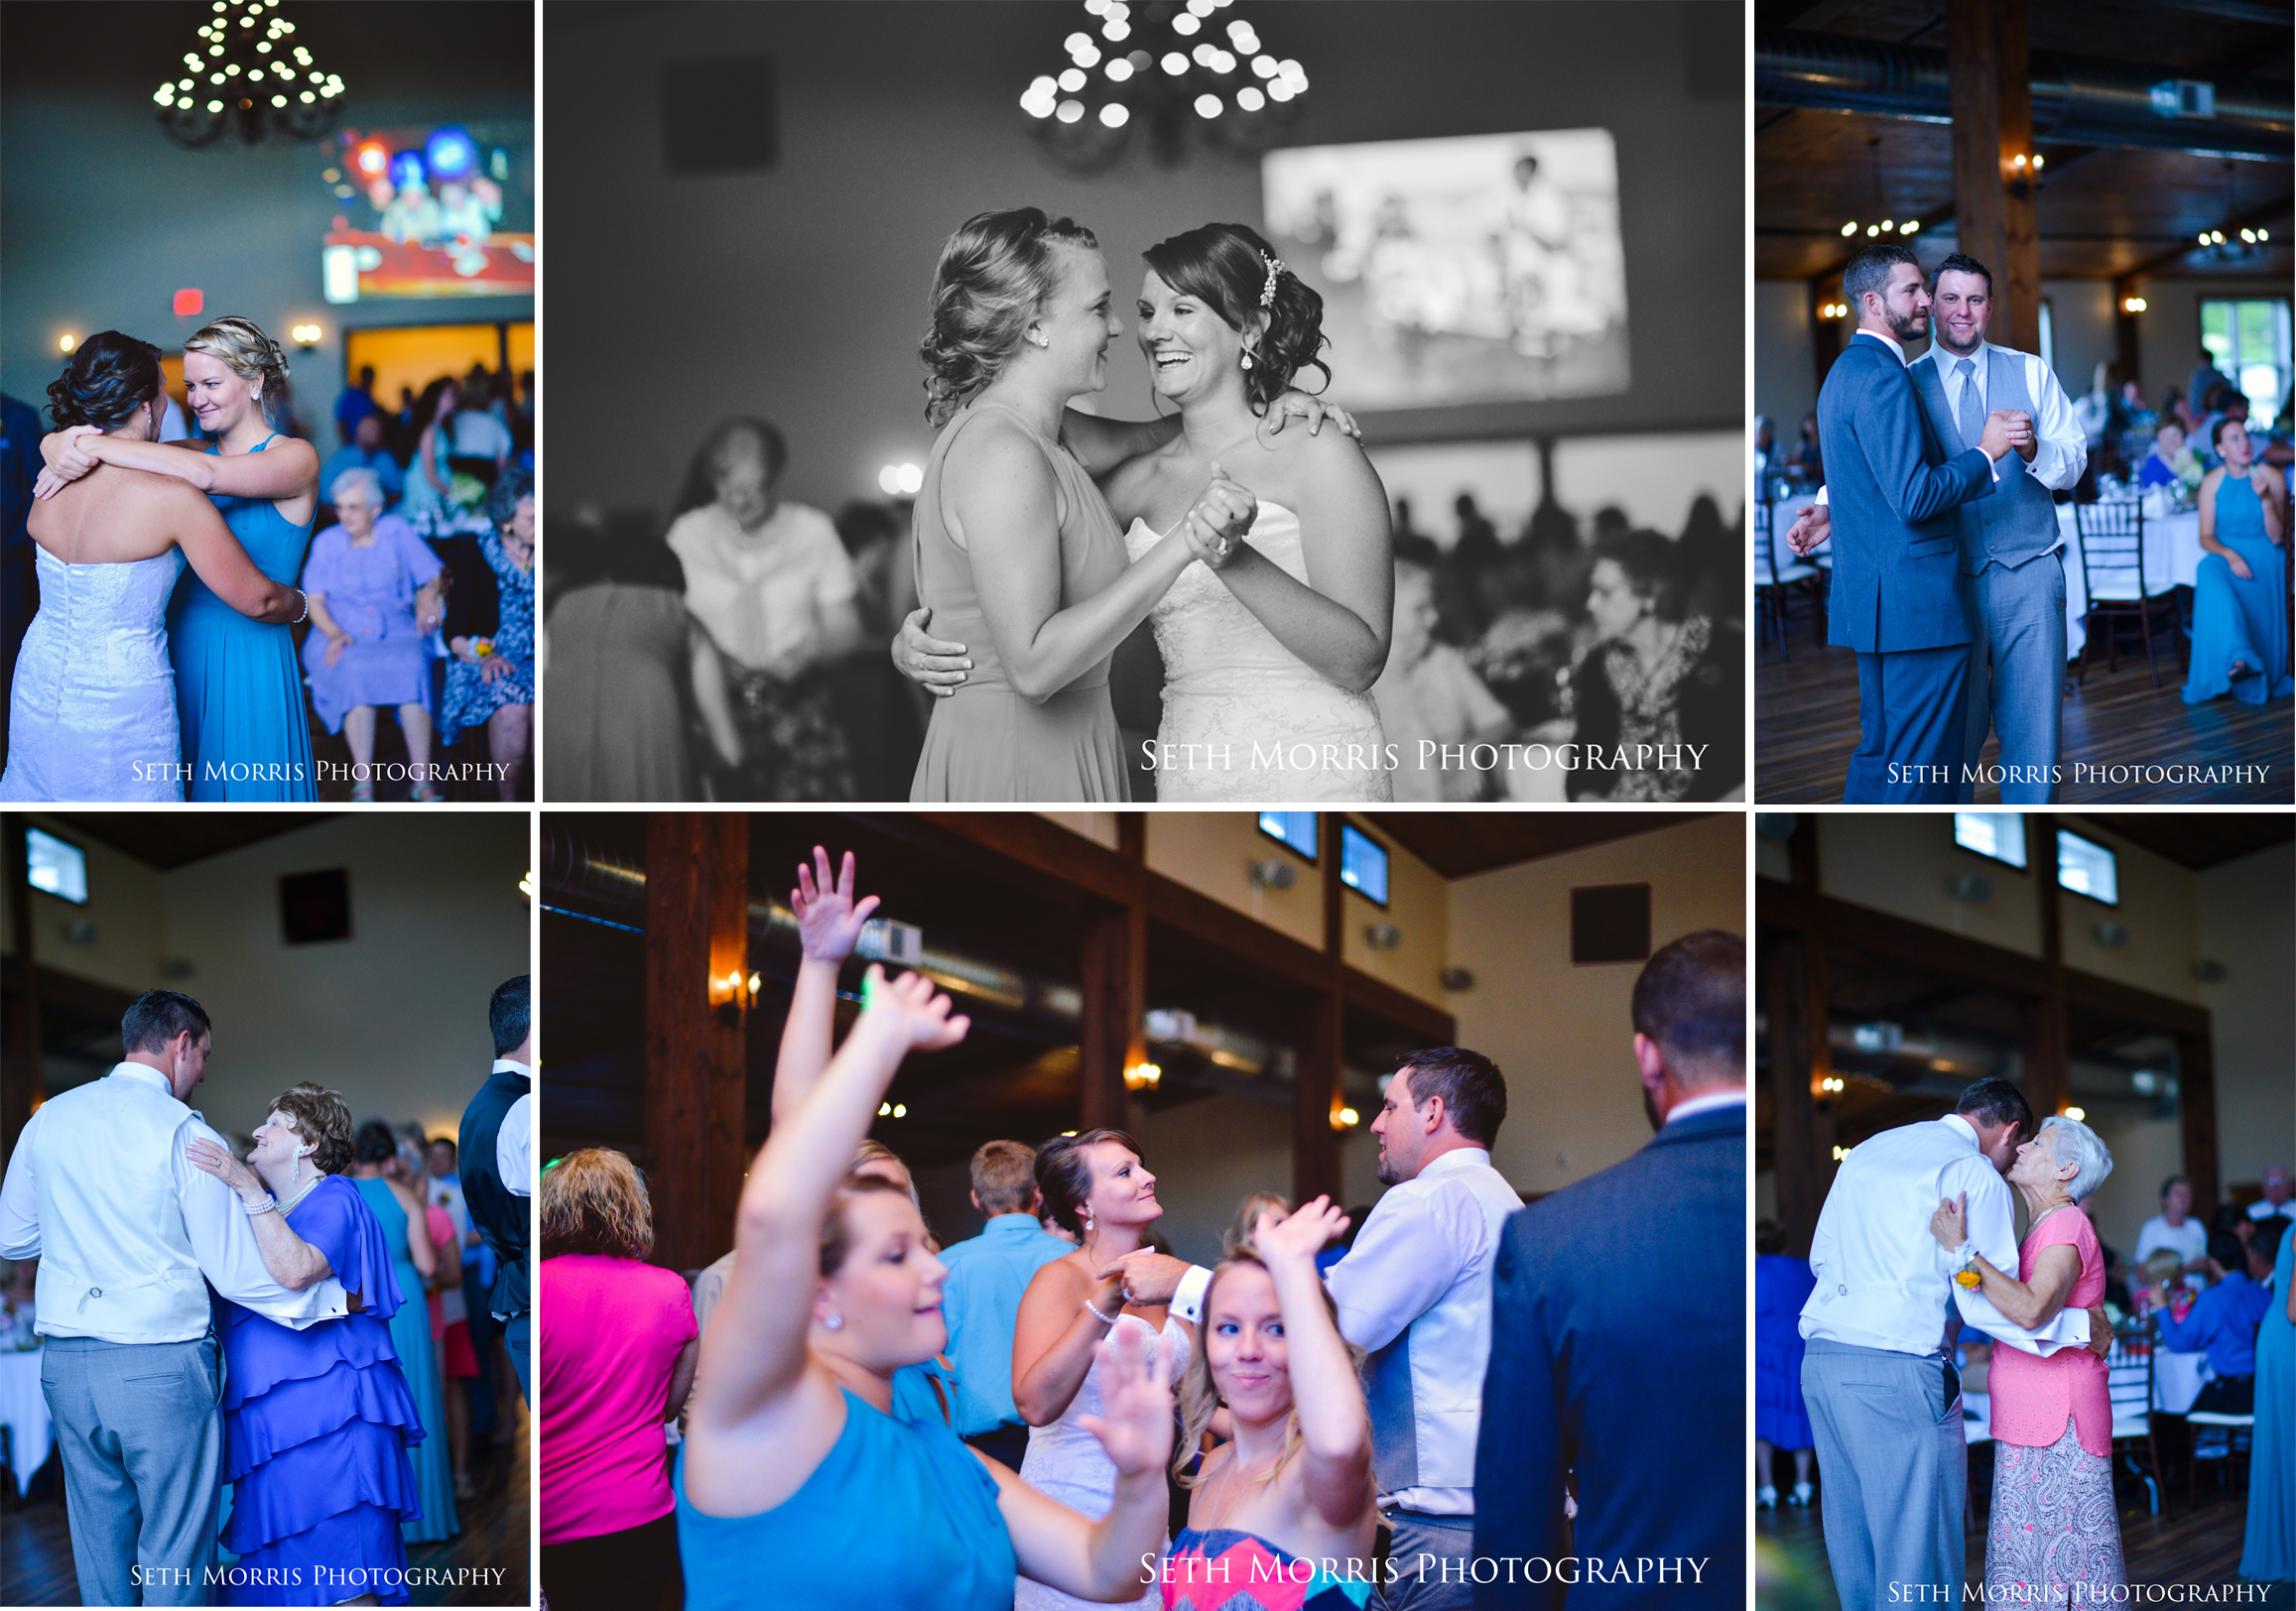 hornbaker-barn-wedding-photo-princeton-photographer-80.jpg